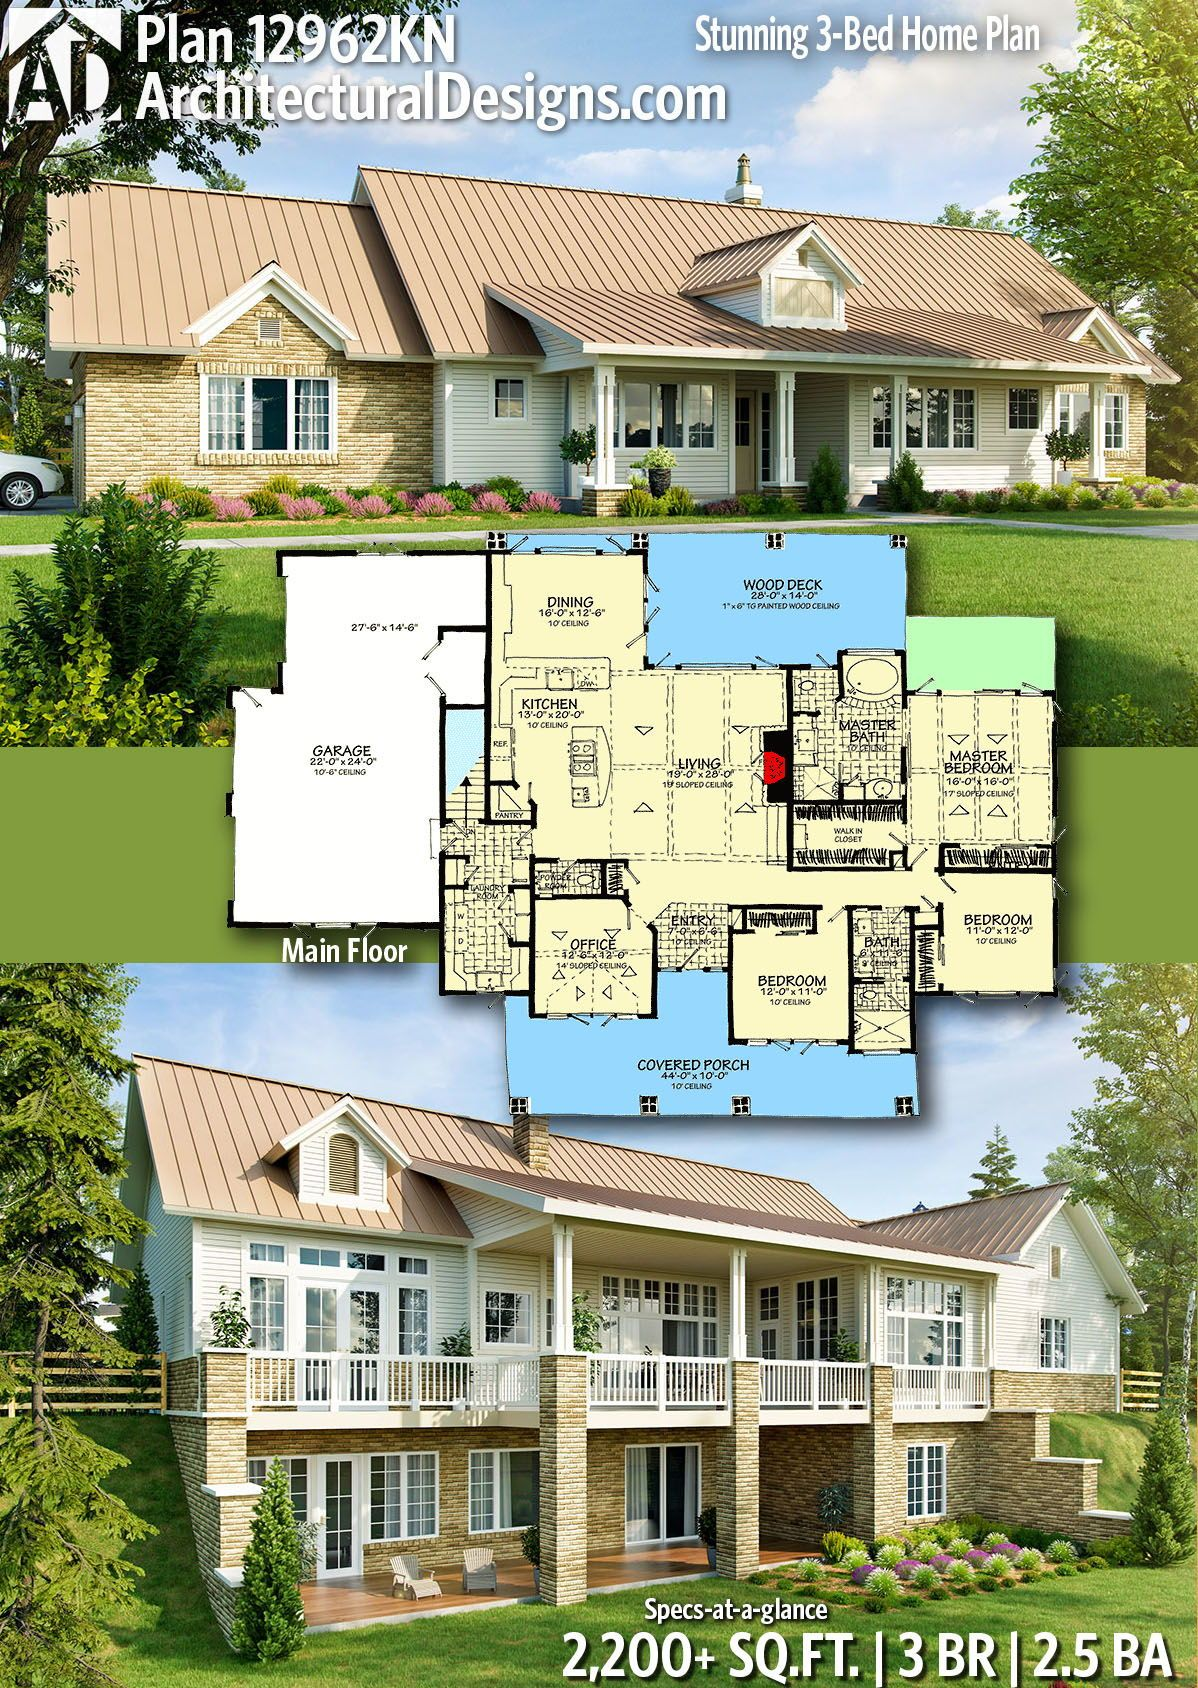 Plan 12962kn Stunning 3 Bed Home Plan With Dramatic Rear Elevation House Plans Architecture Design Building Design